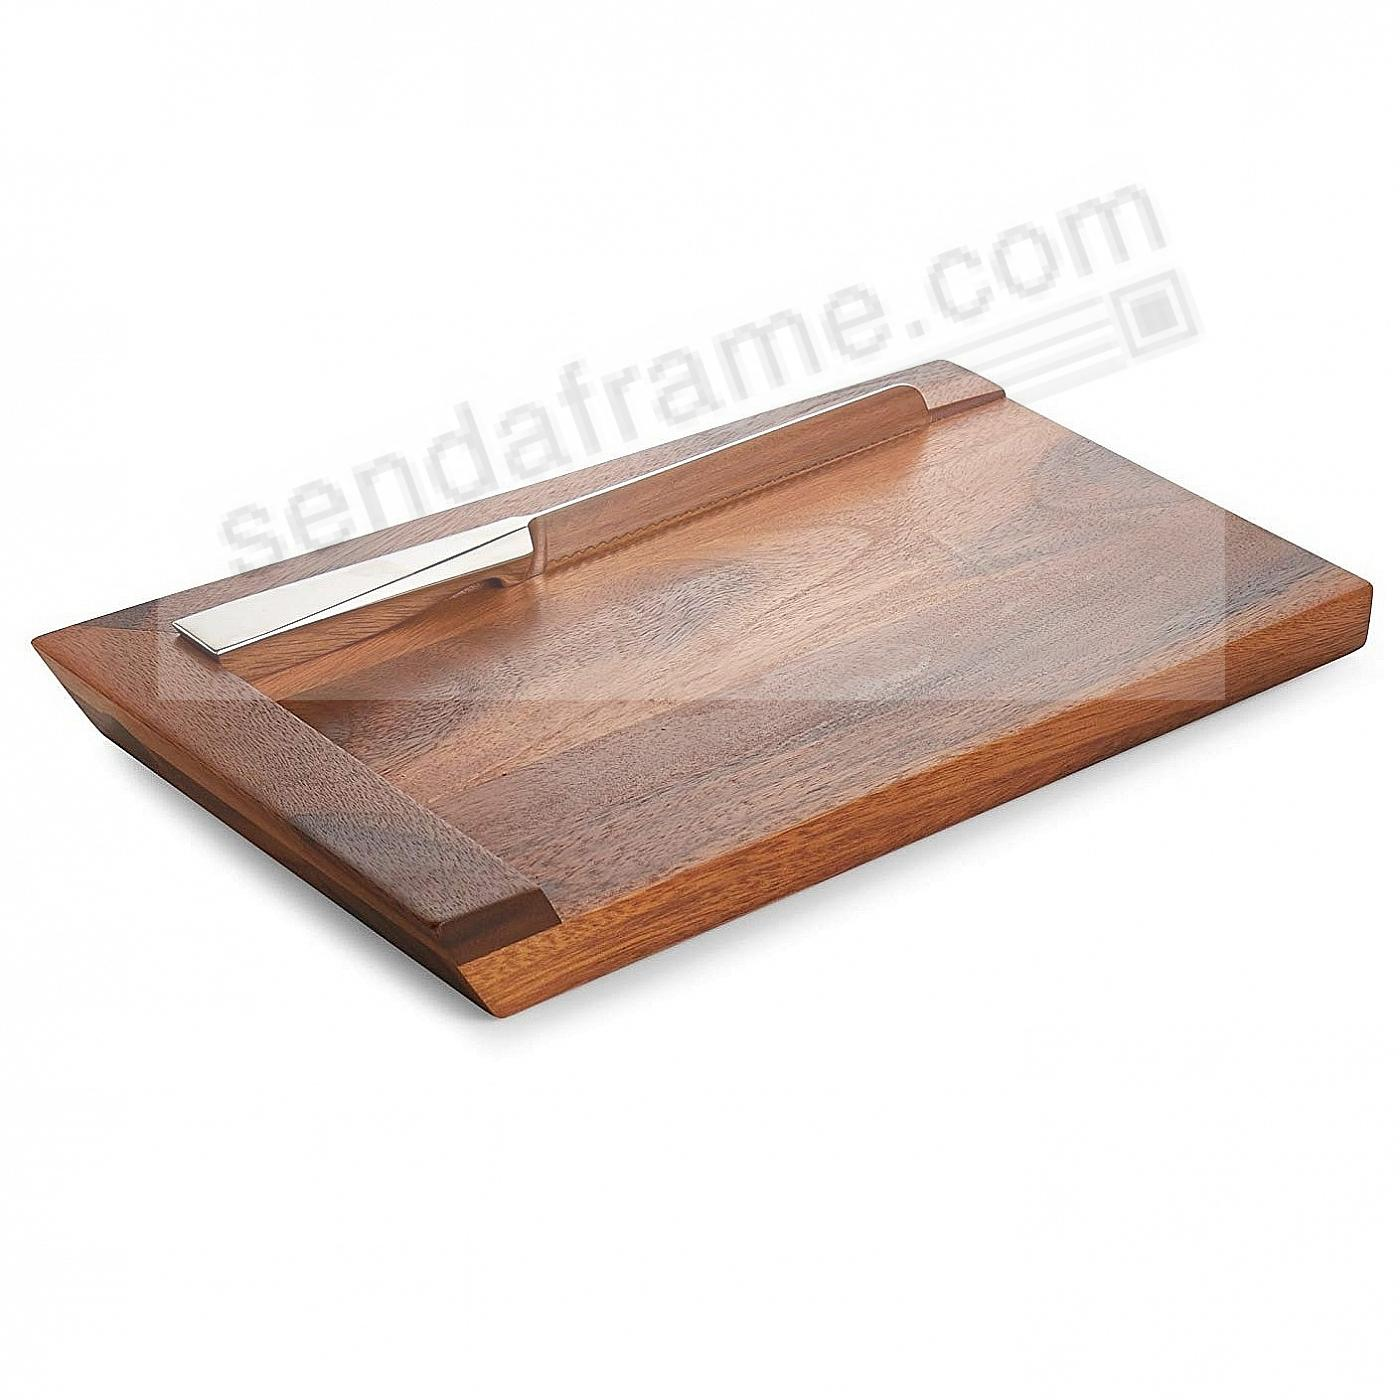 The GEO CHALLAH BREAD BOARD with Knife - Wood/Stainless Steel by Nambe®